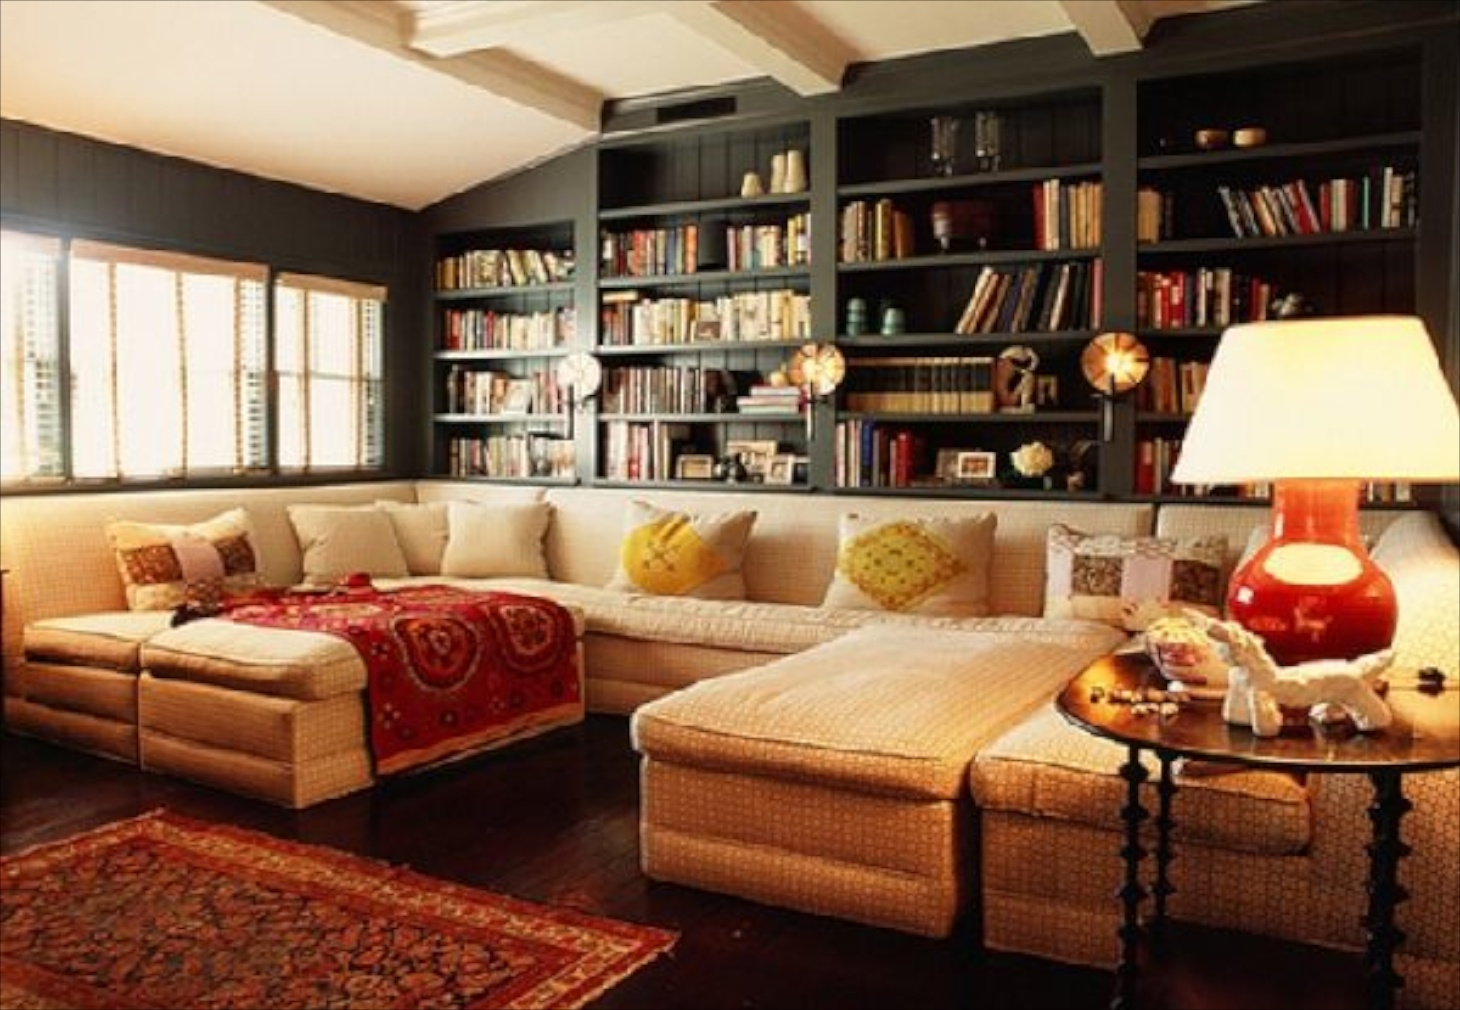 23 sofas and bookcase ideas in cozy living room design for Cozy living room ideas